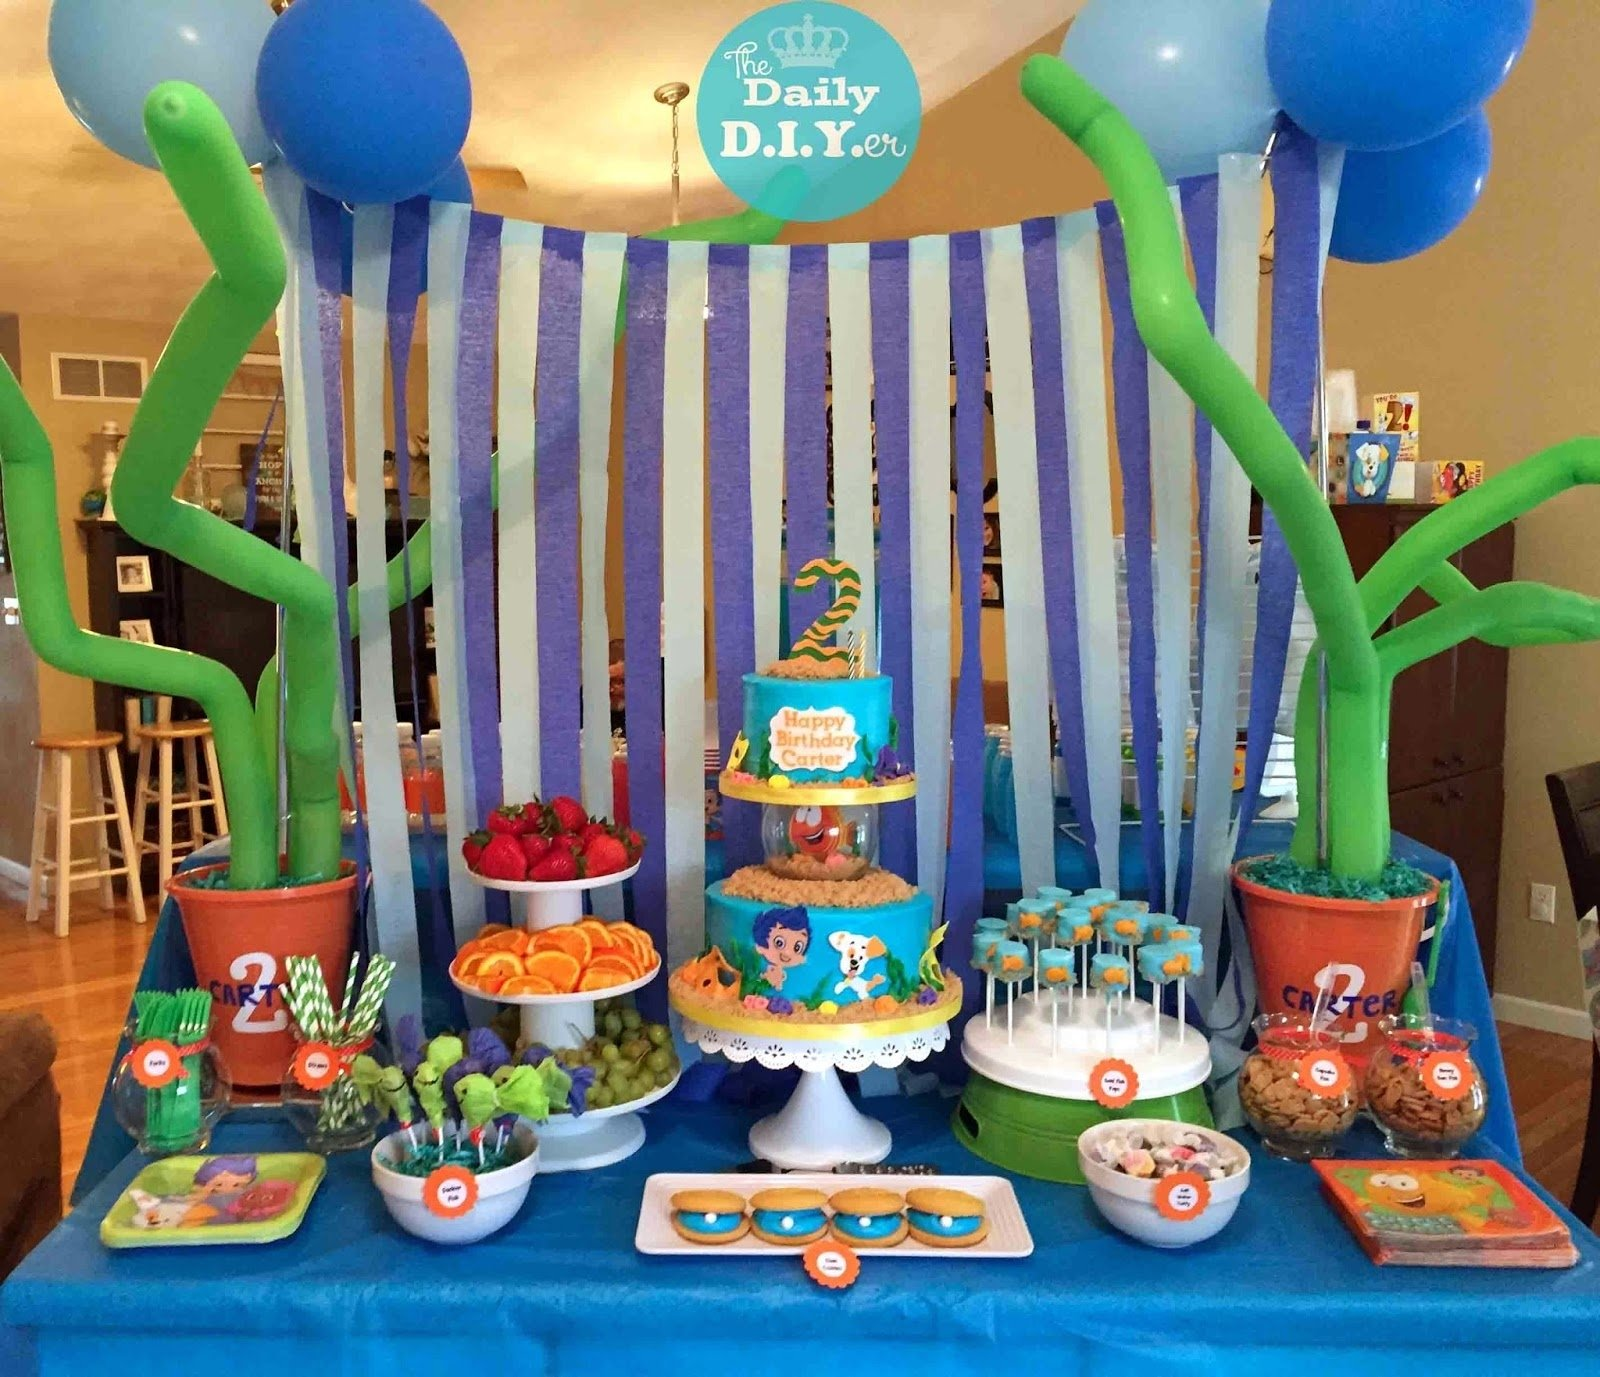 10 Trendy Bubble Guppies Birthday Party Food Ideas the daily diyer bubble guppies party food